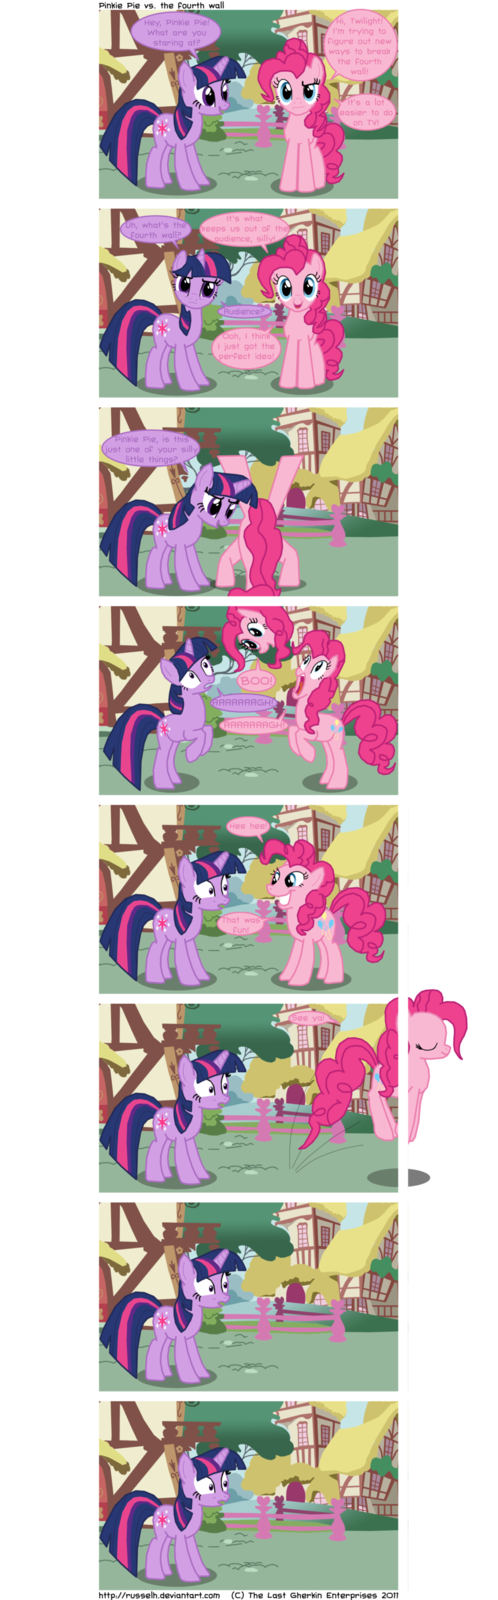 pinkie_pie_vs__the_fourth_wall_by_russelh-d39dulz.png